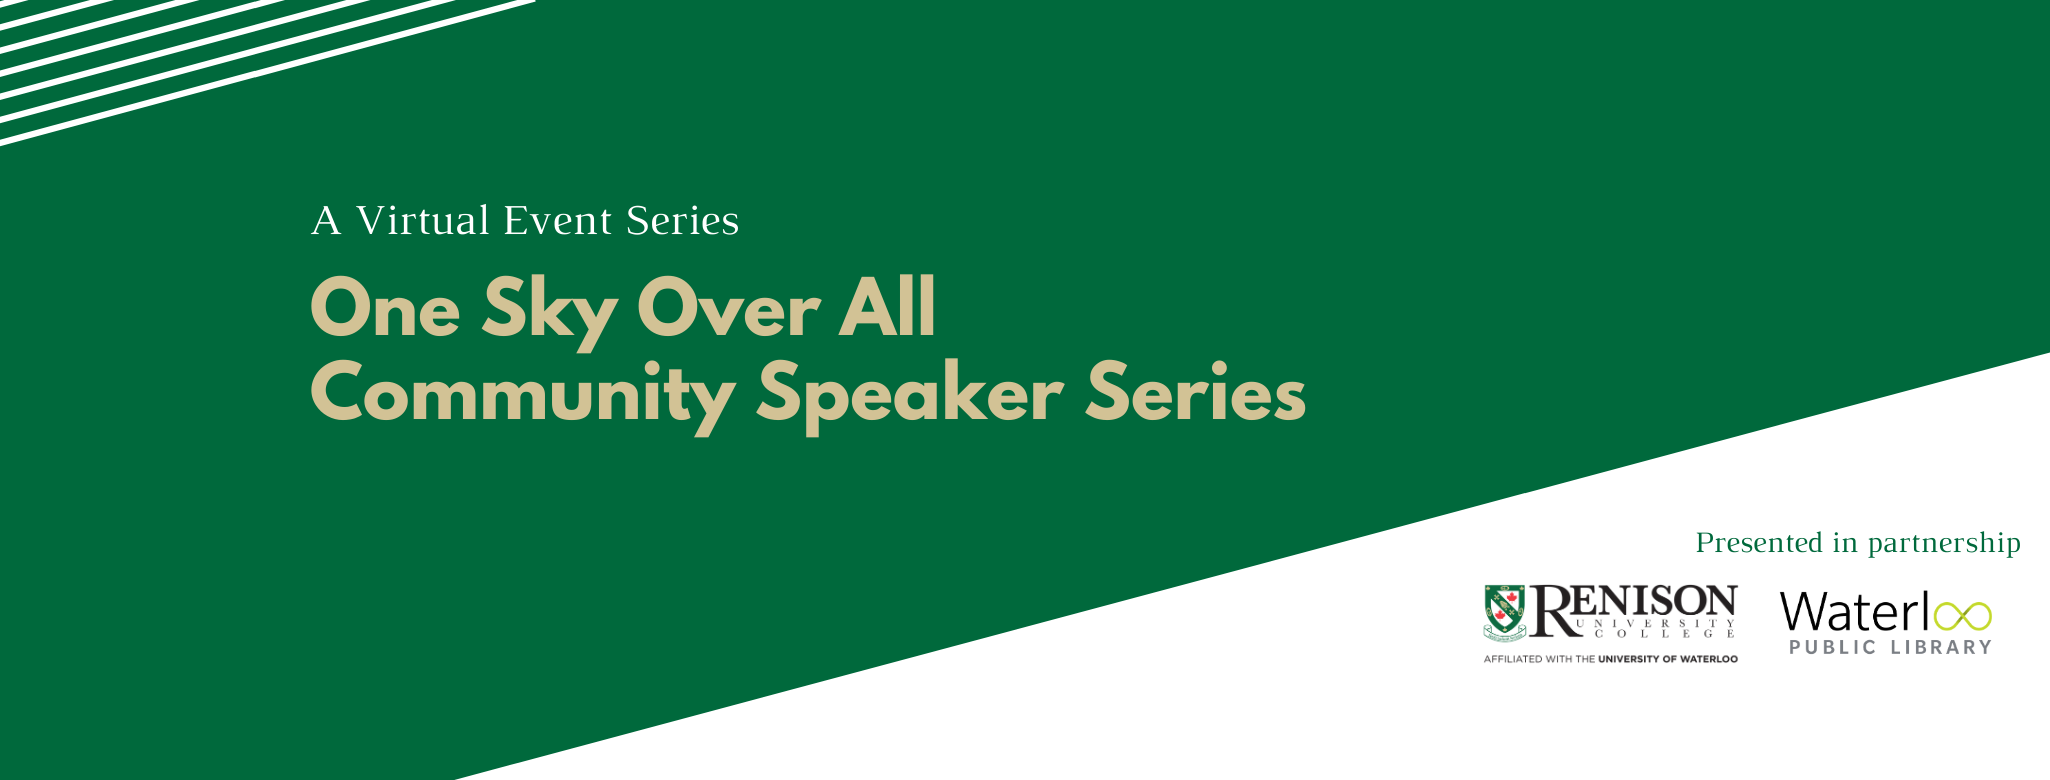 A virtual speaker series, the one sky over all speaker series. Presented in partnership with Renison and Waterloo Public Library